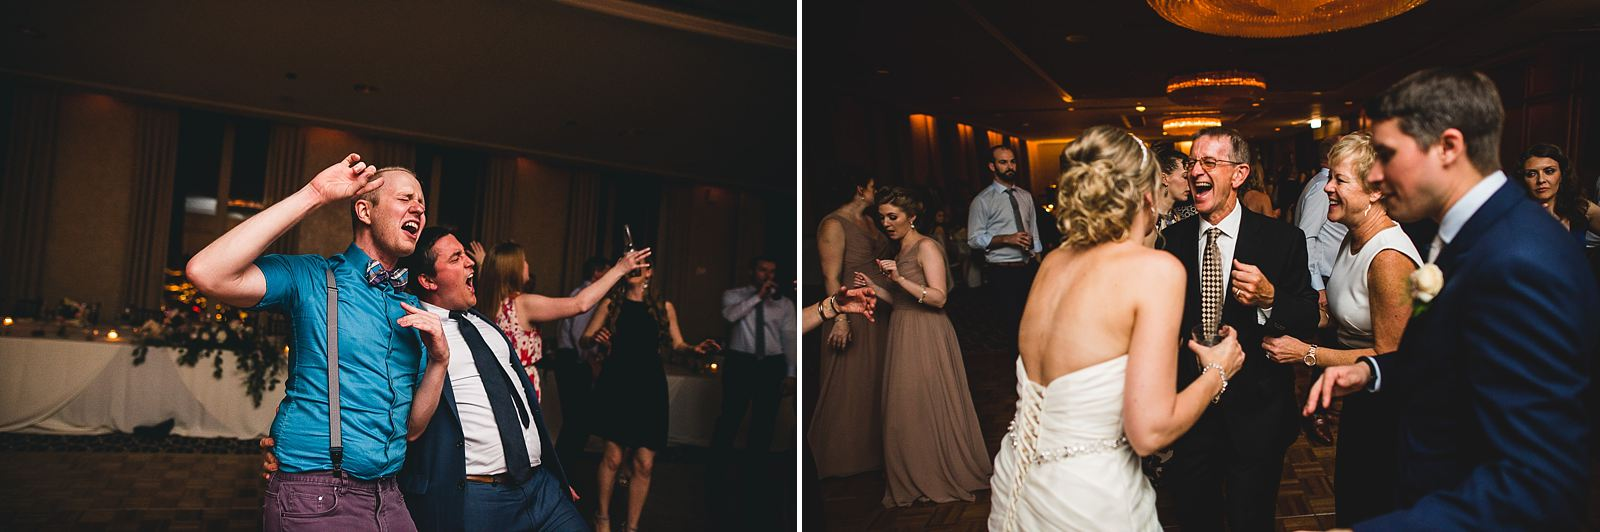 67 mid america club wedding photography - Mid America Club Wedding Photography / Hannah + Jay